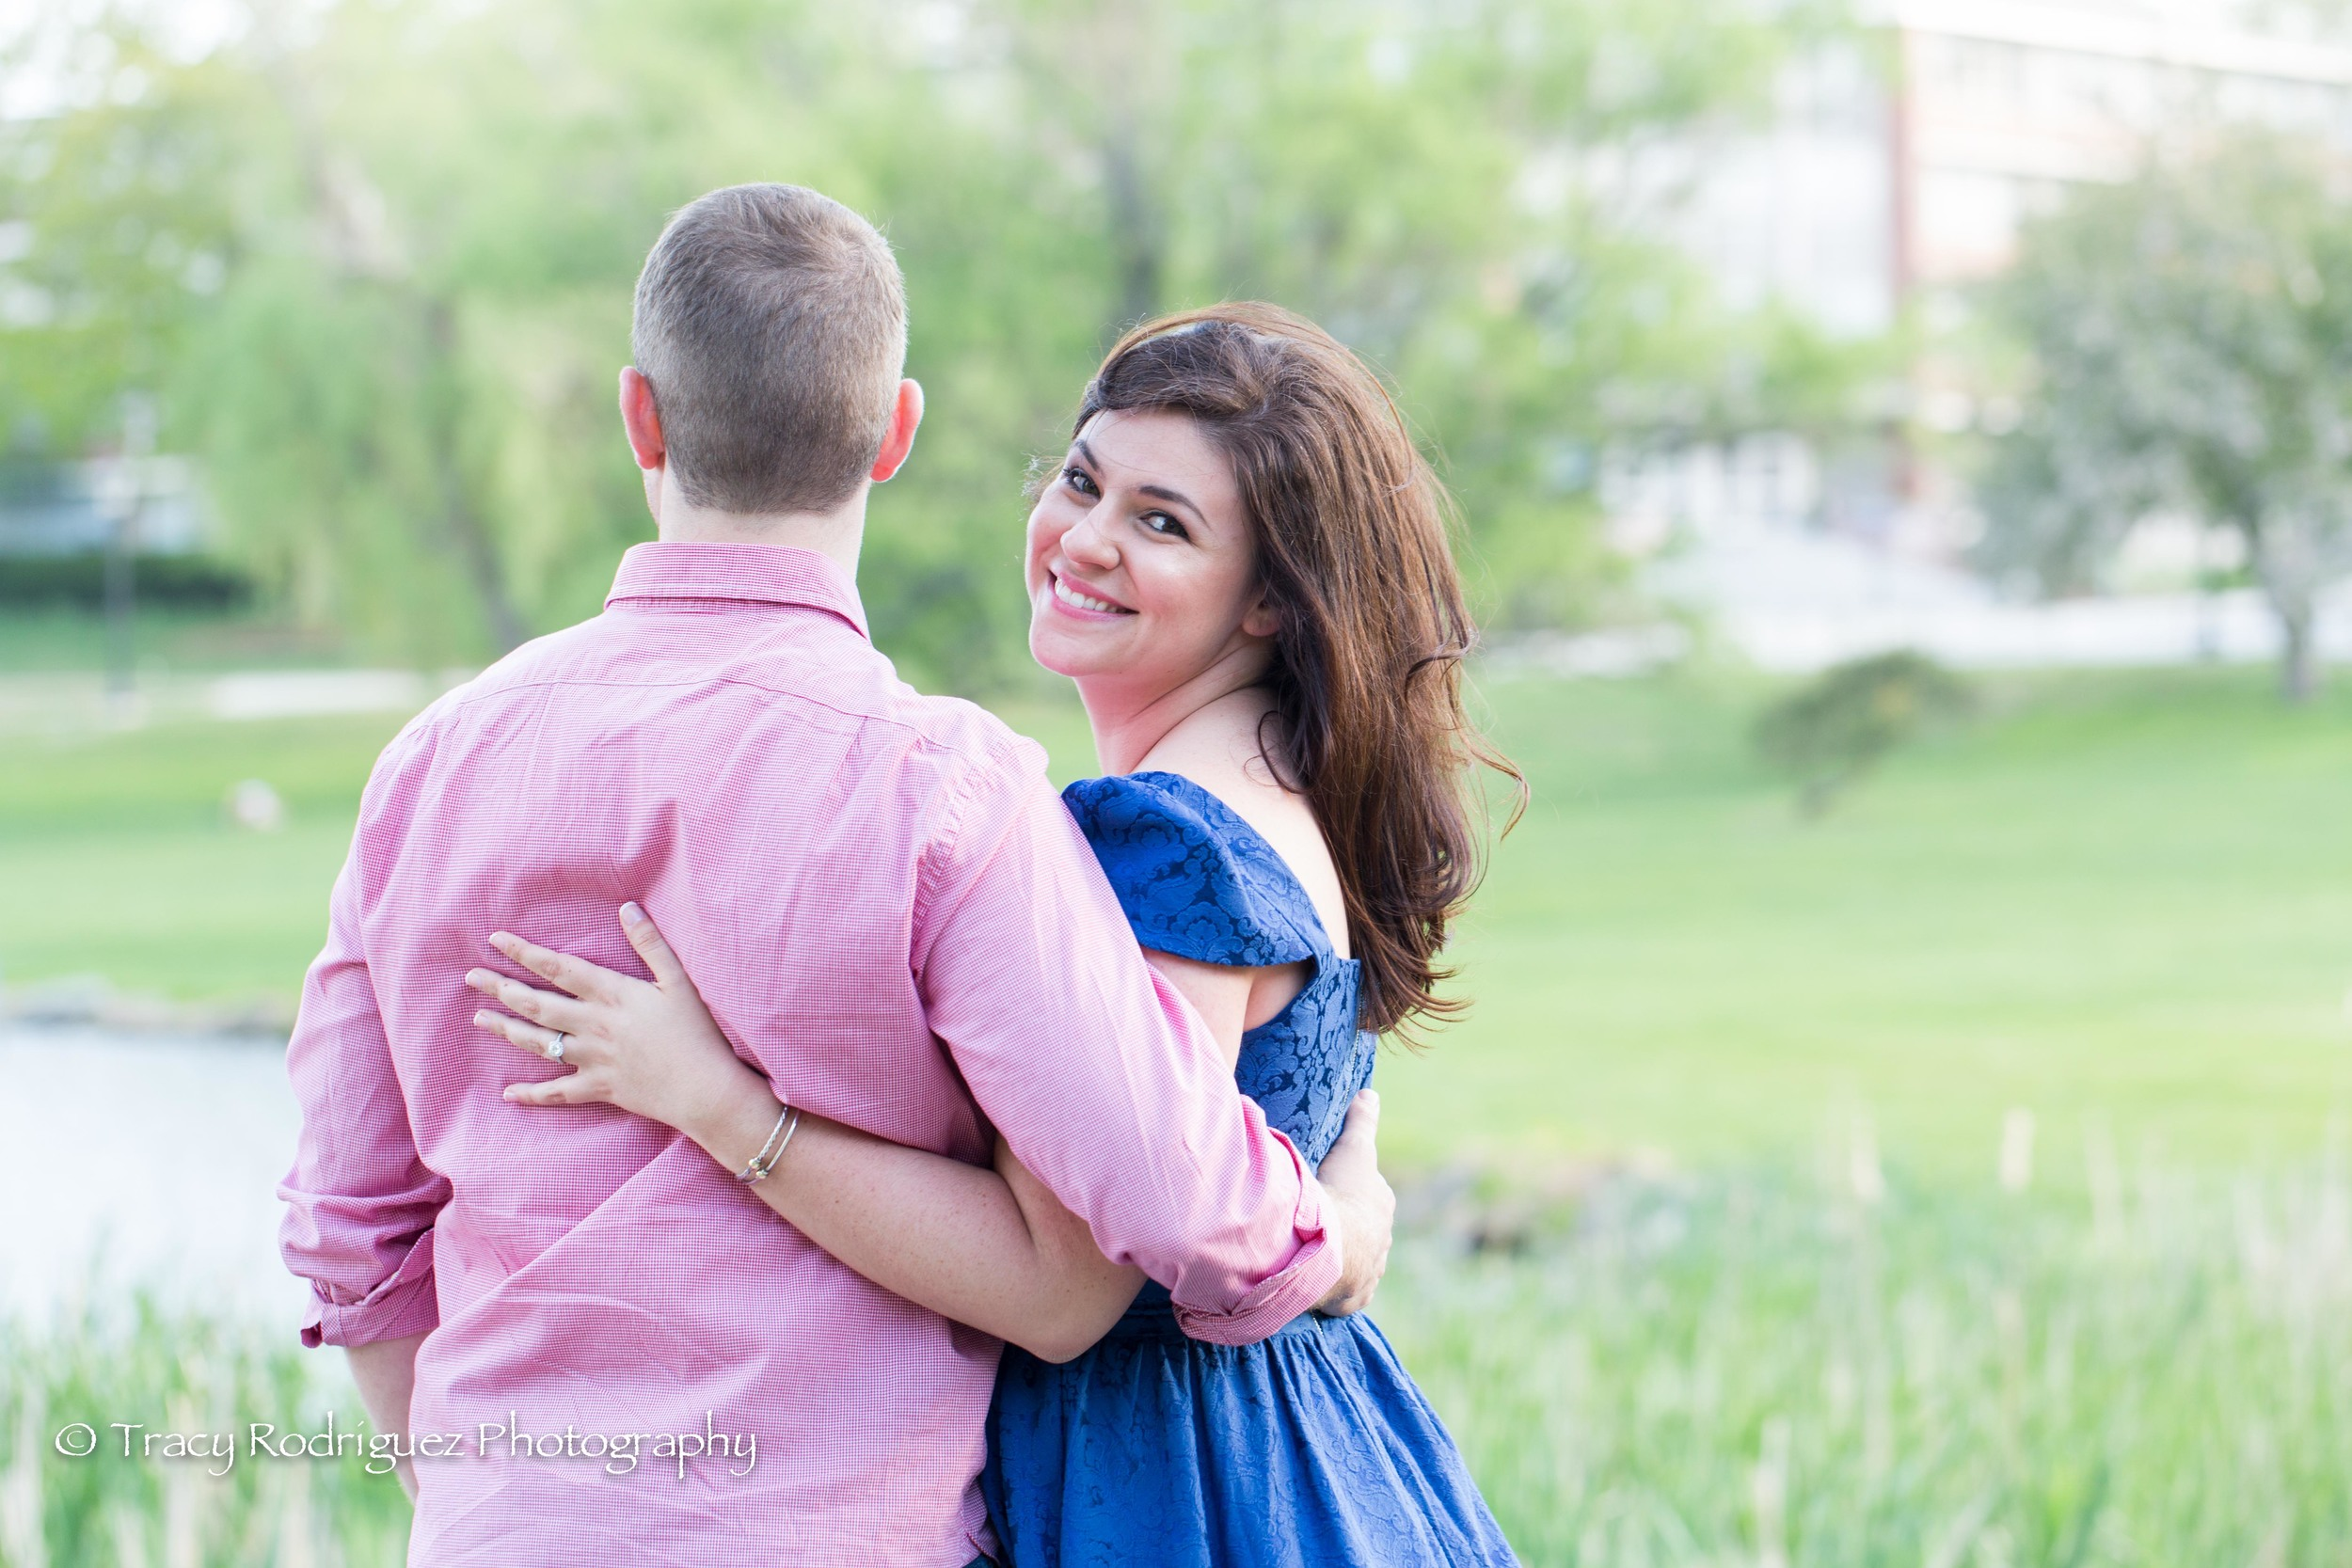 TracyRodriguezPhotography-LowRes-16.jpg